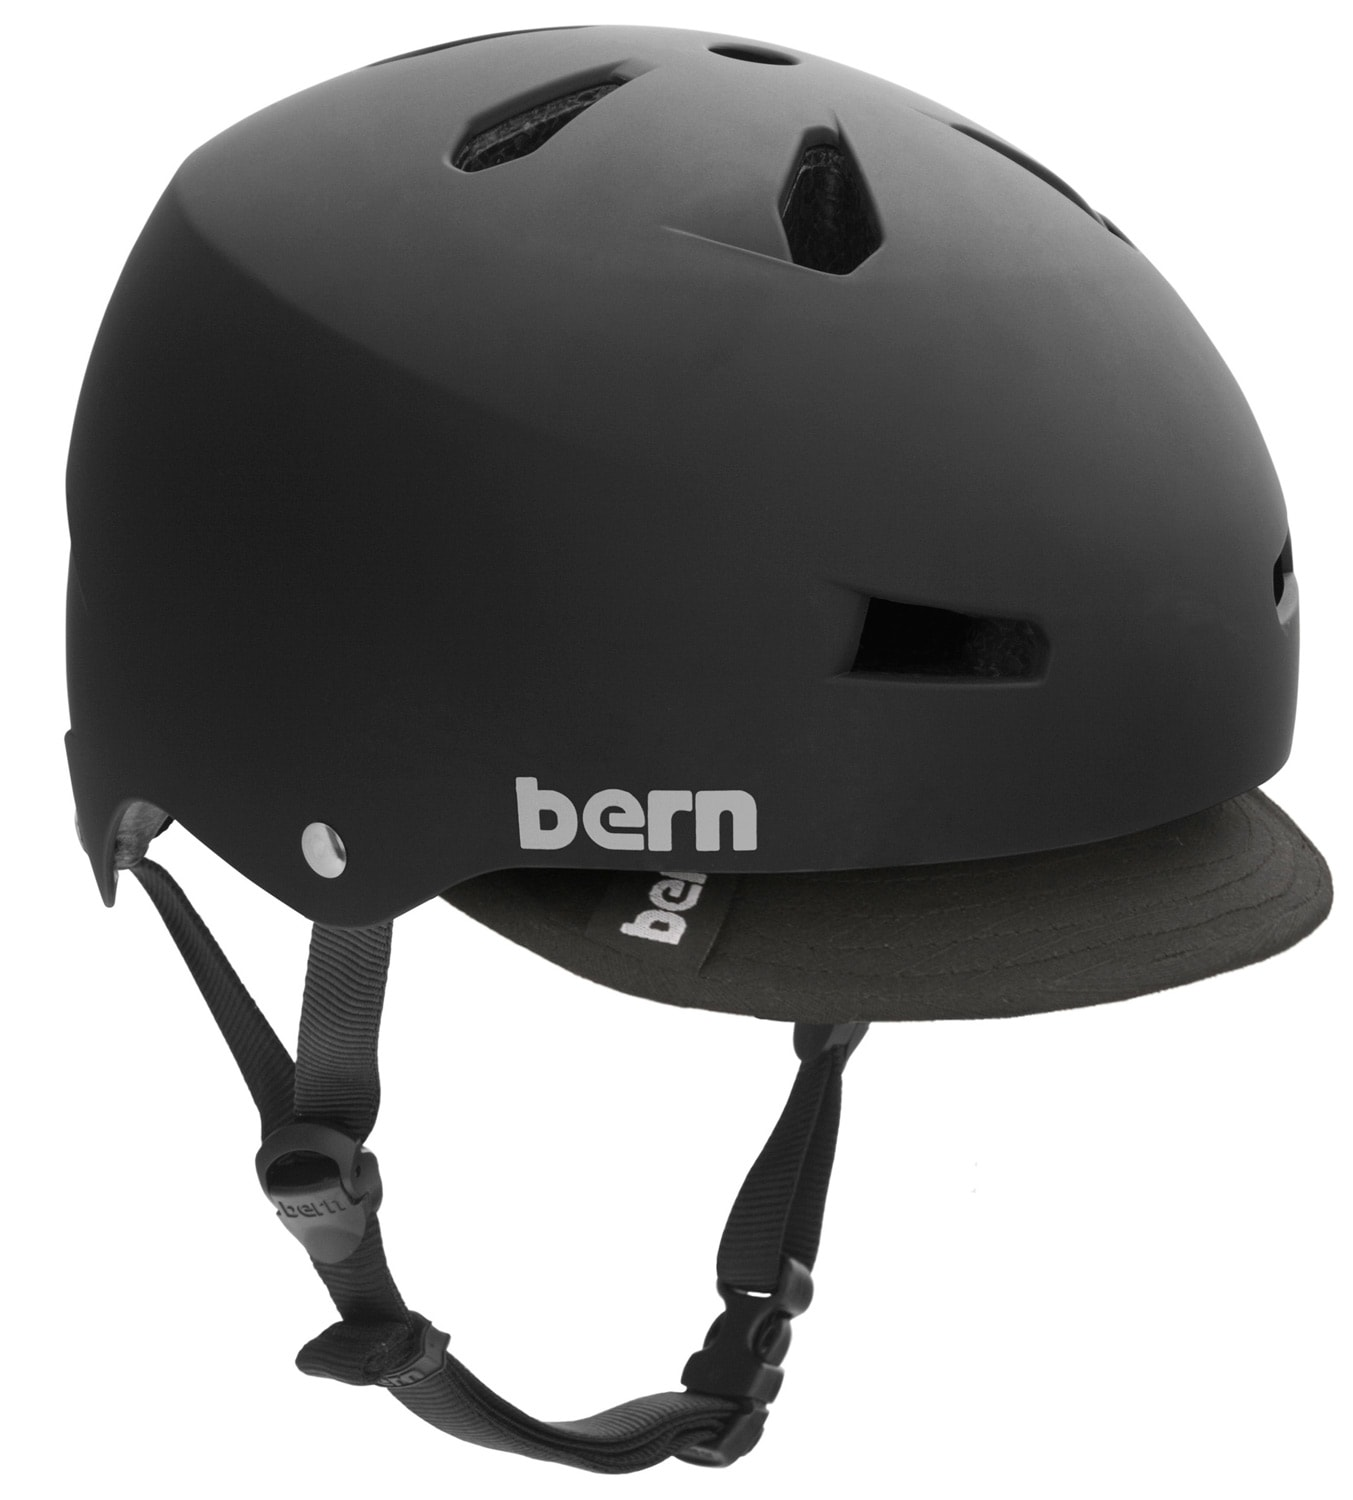 Shop for Bern Macon w/ Visor Bike Helmet Black - Men's